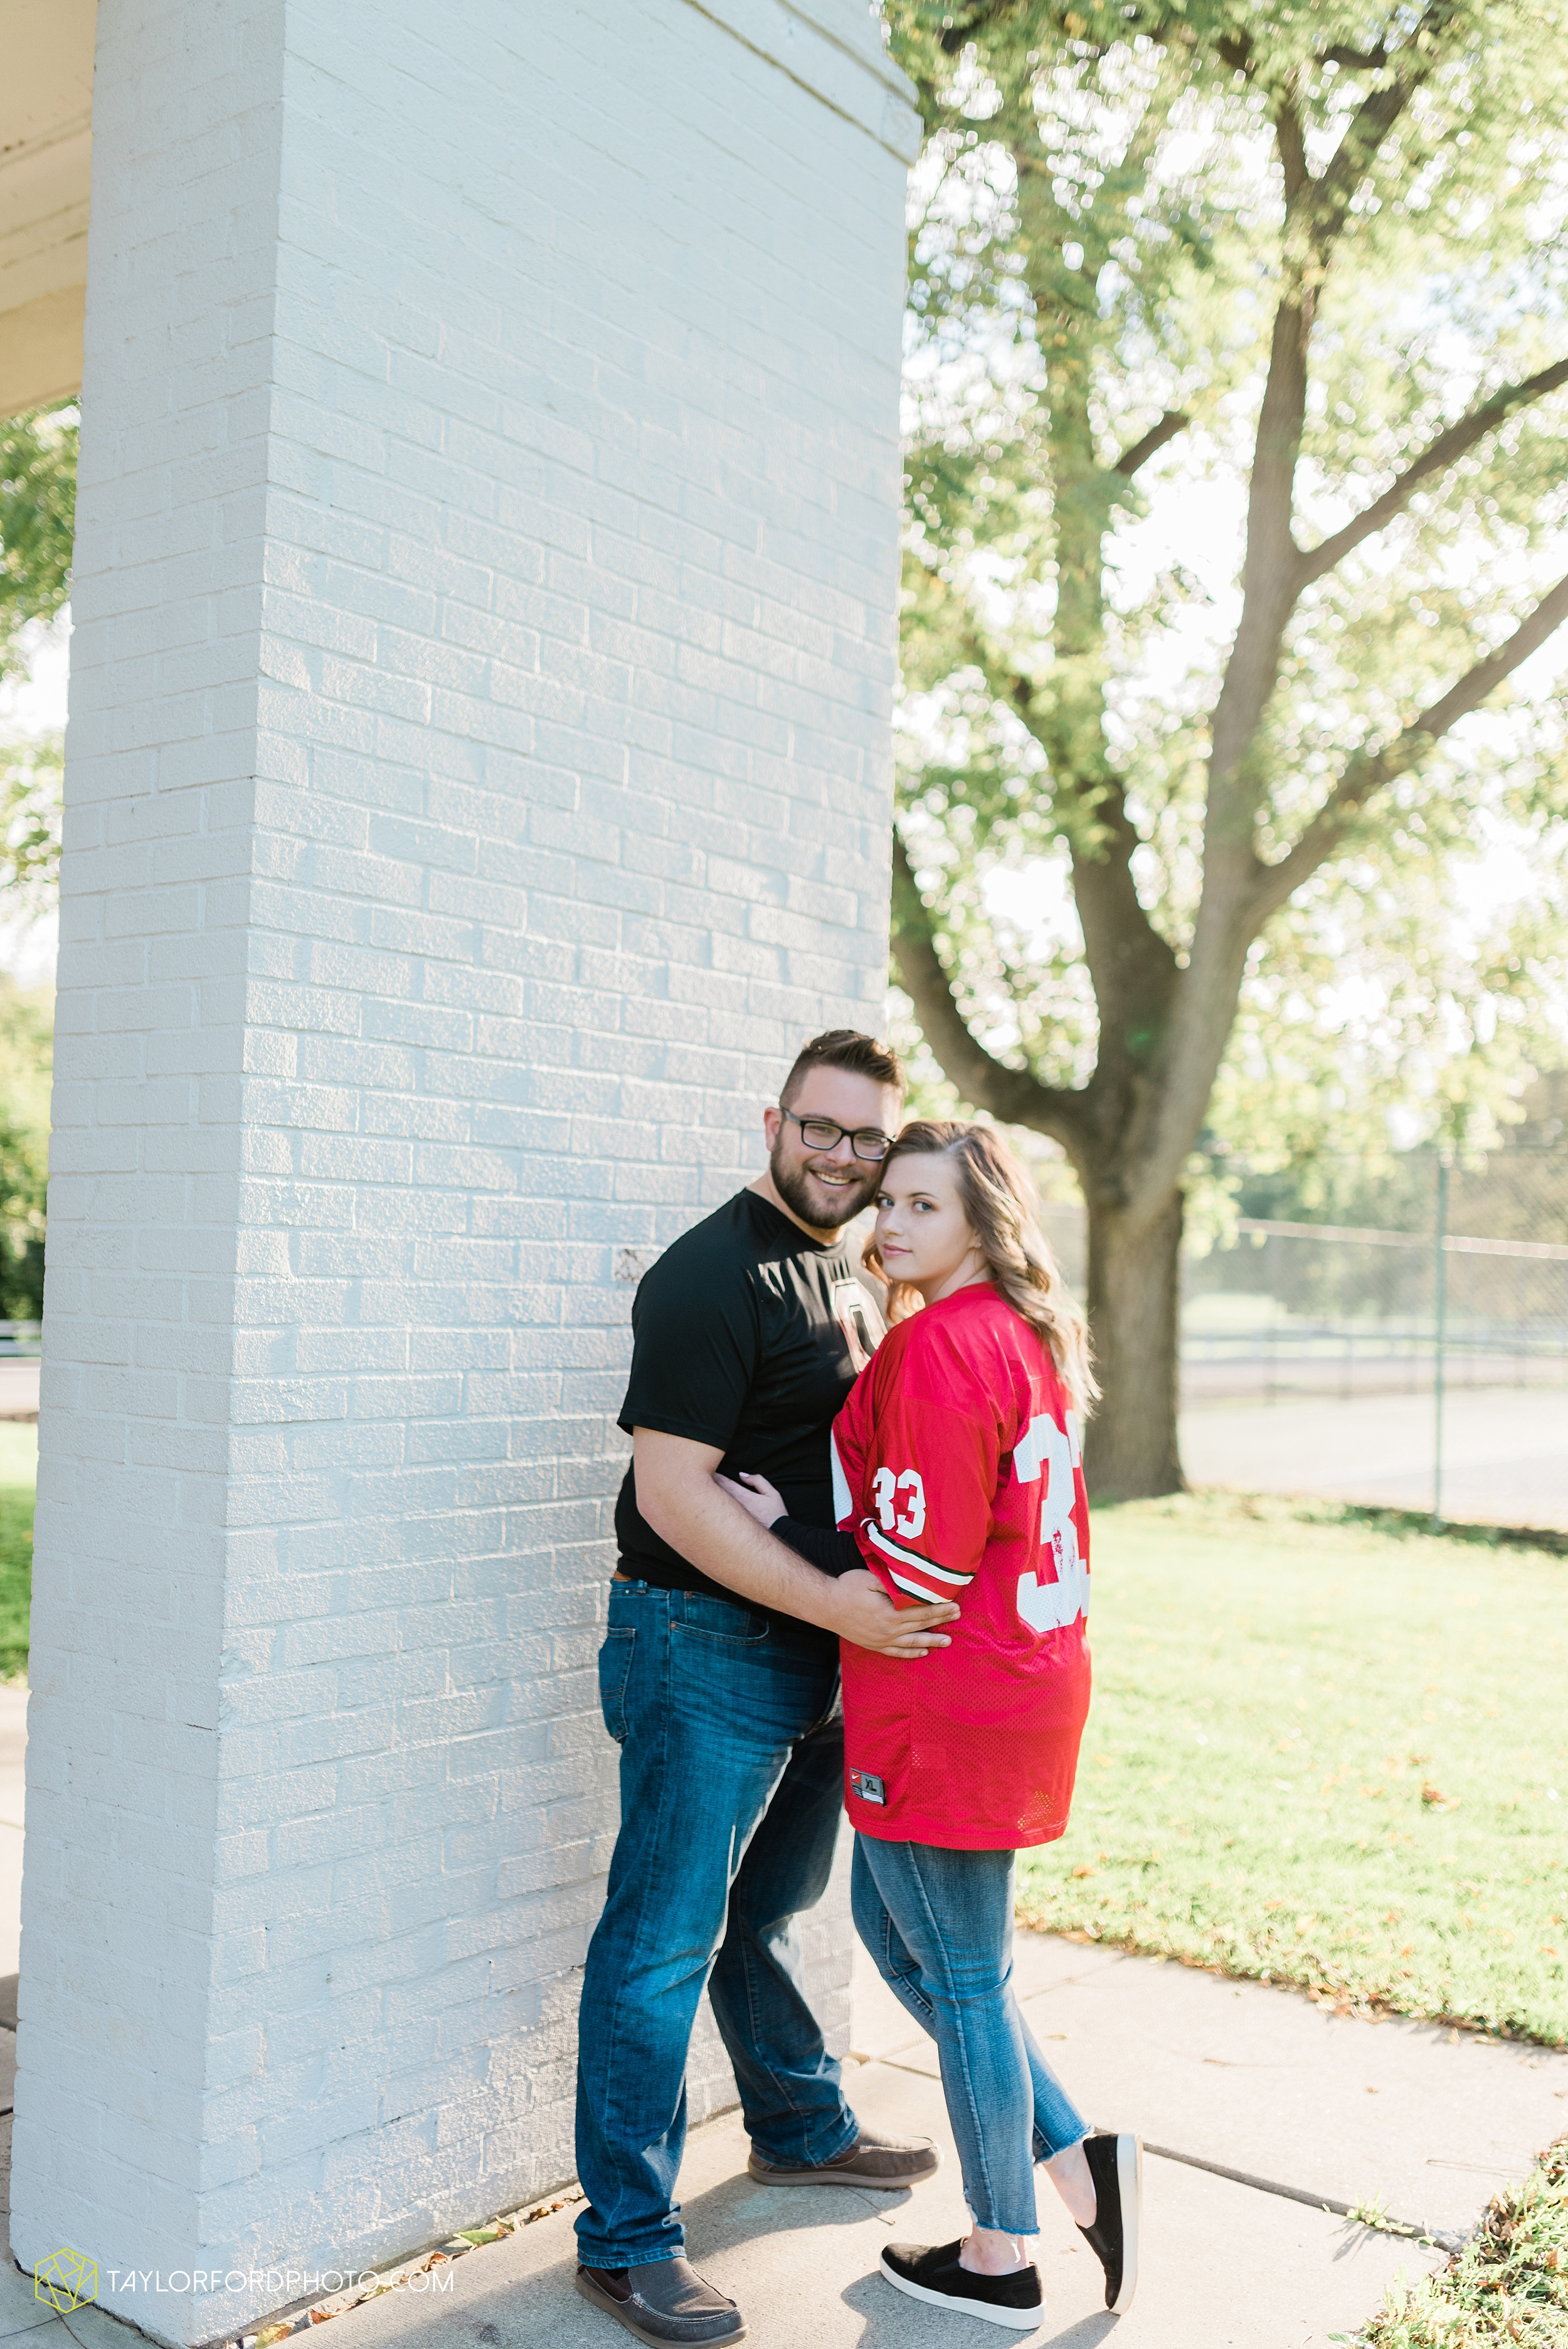 downtown-fort-wayne-engagement-foster-park-bravas-wunderkamer-fox-island-quarry-photographer-taylor-ford-photography_0964.jpg